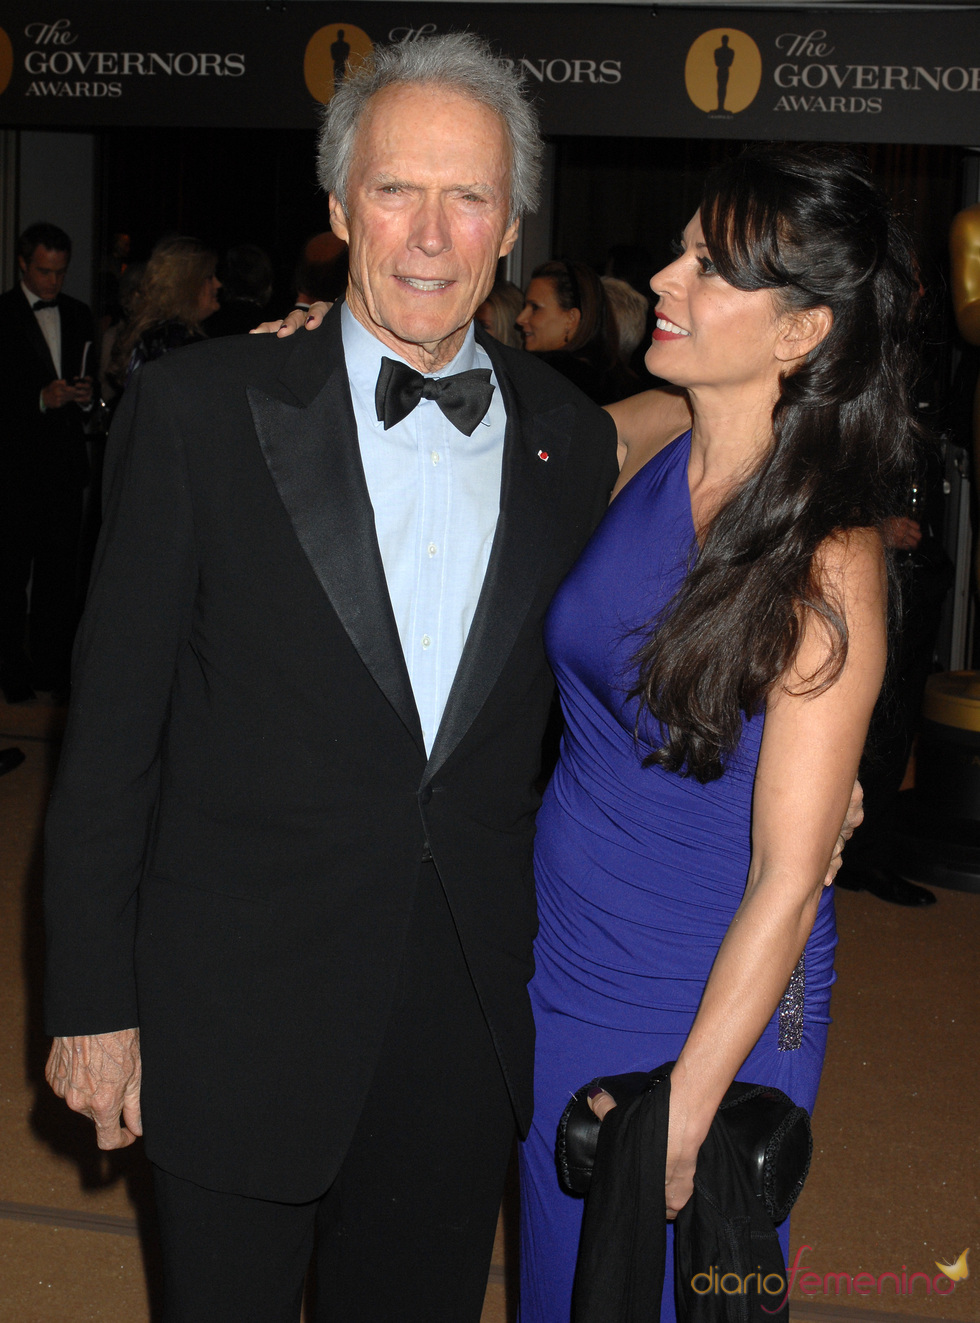 Clint Eastwood y su mujer Dina Louise en los Governors Awards-2010